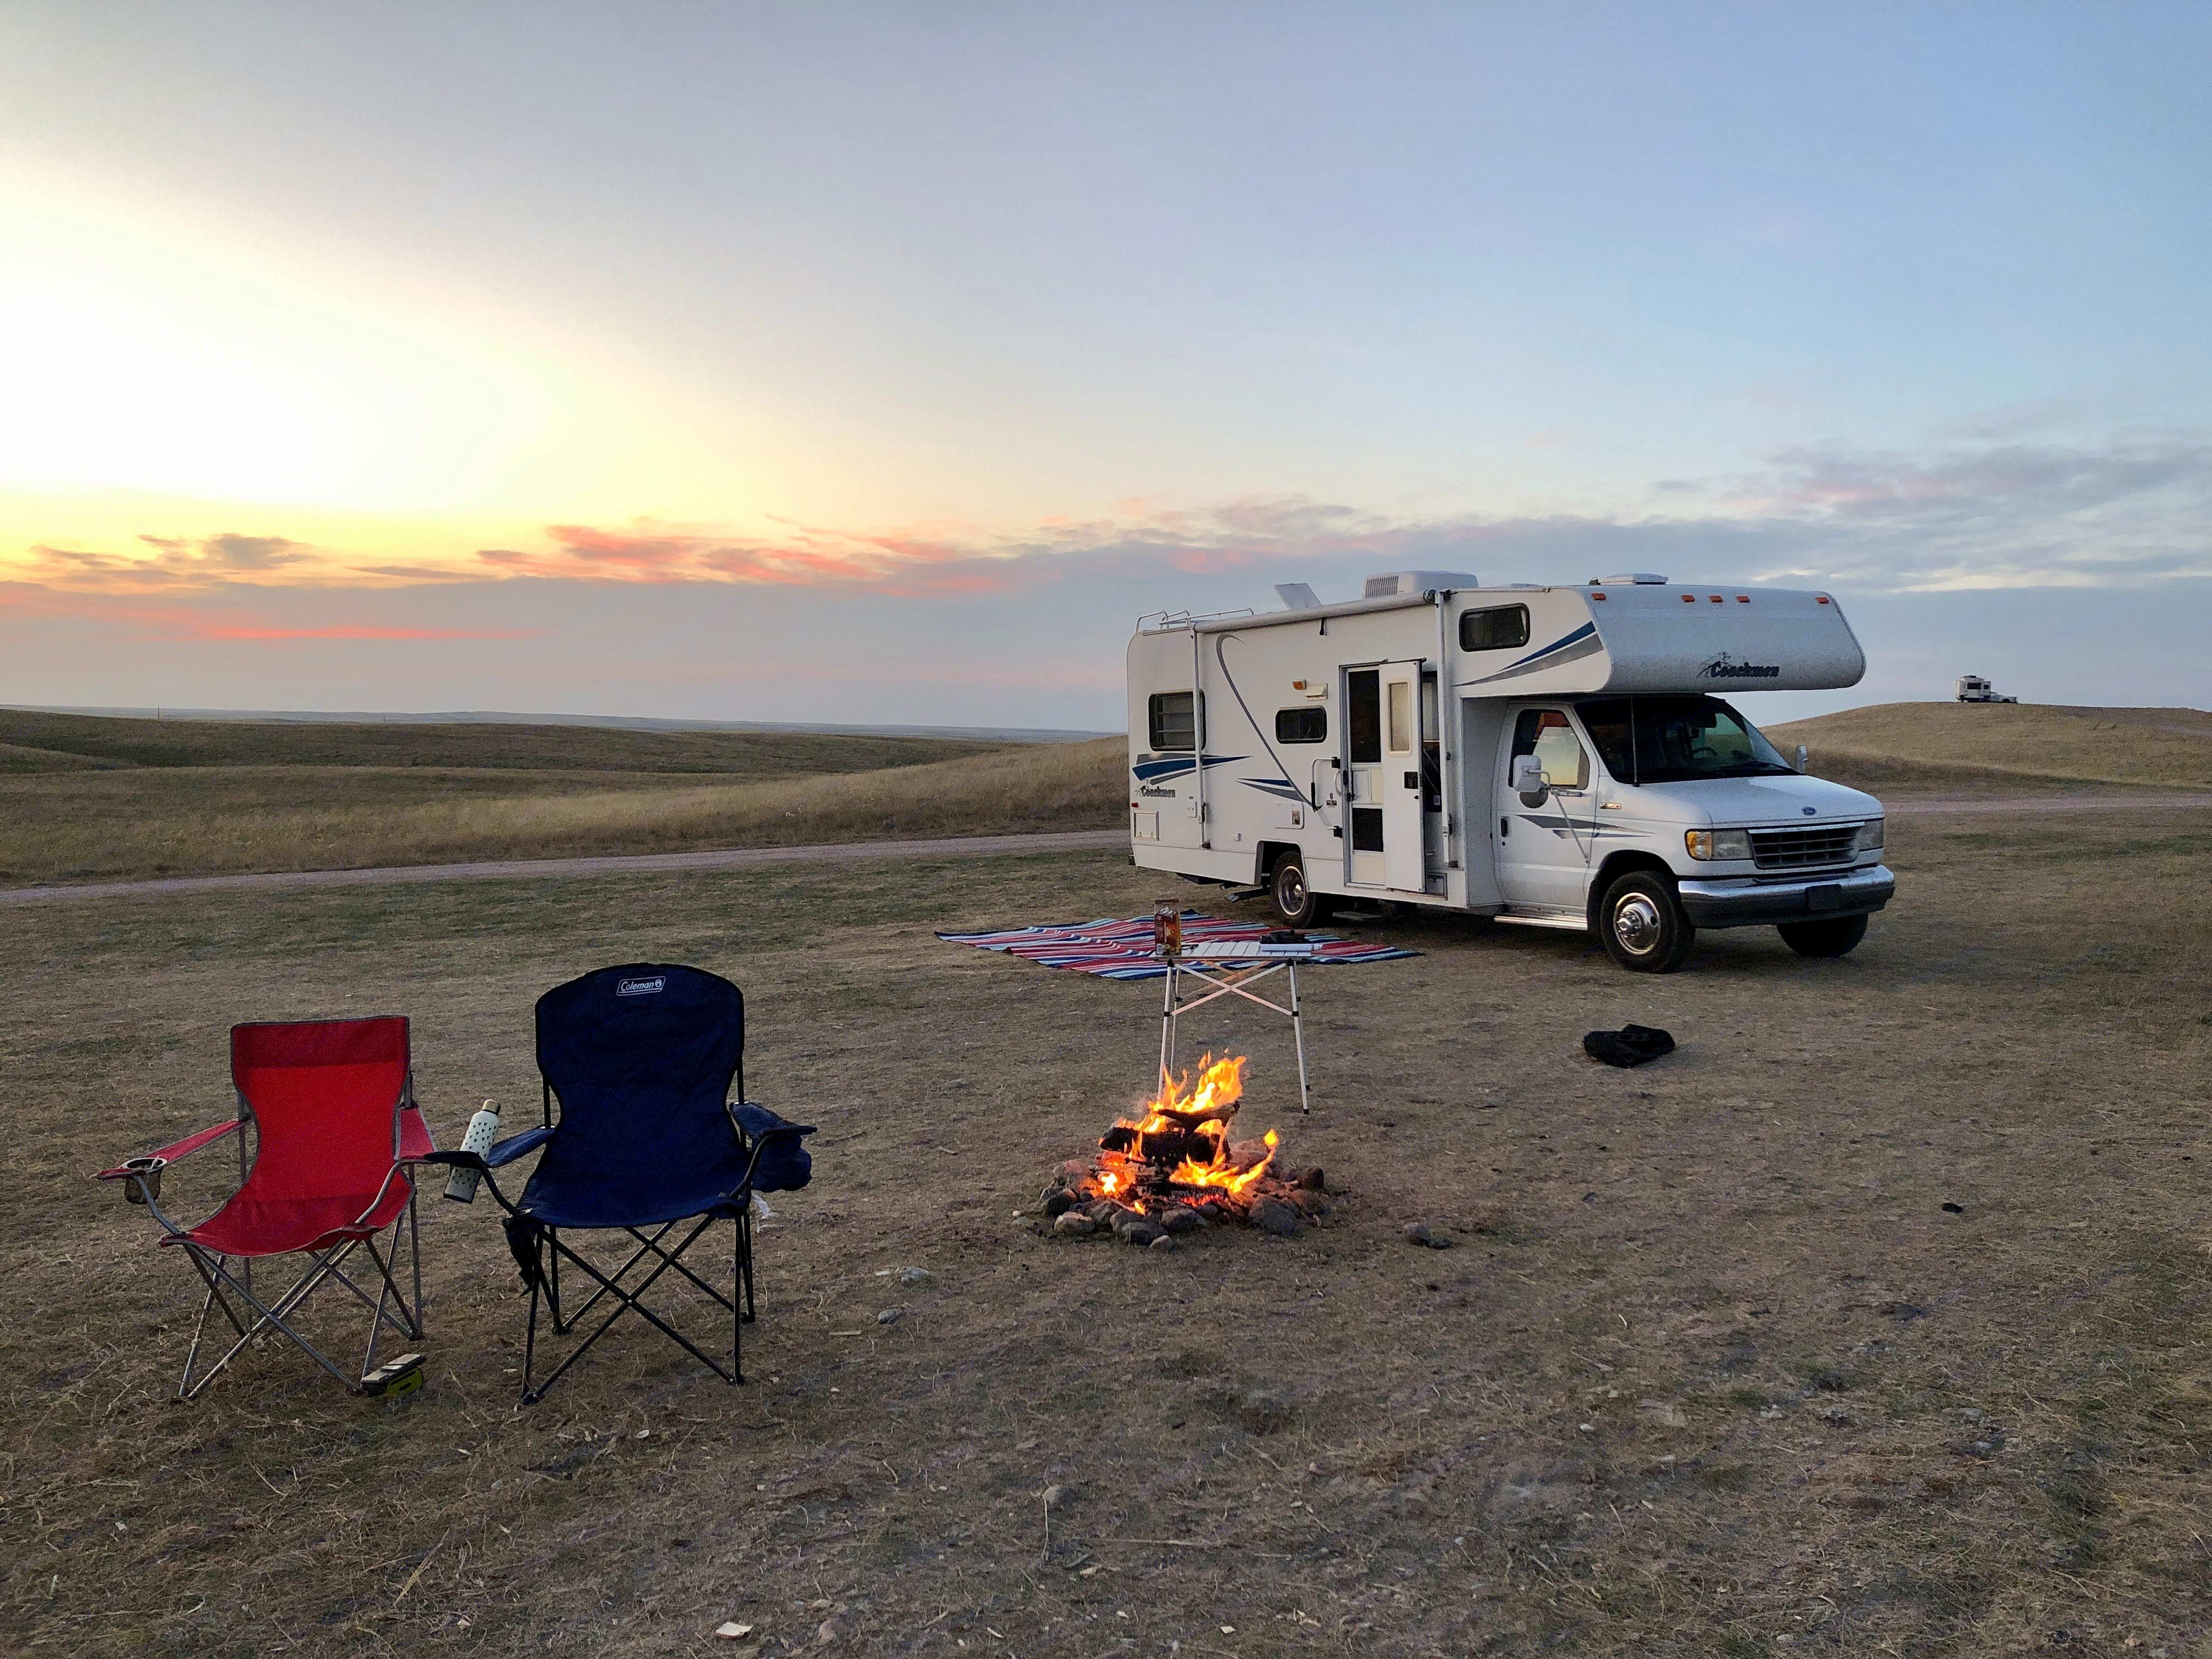 After a long day hiking in badlands national park . Coachmen Catalina 1996